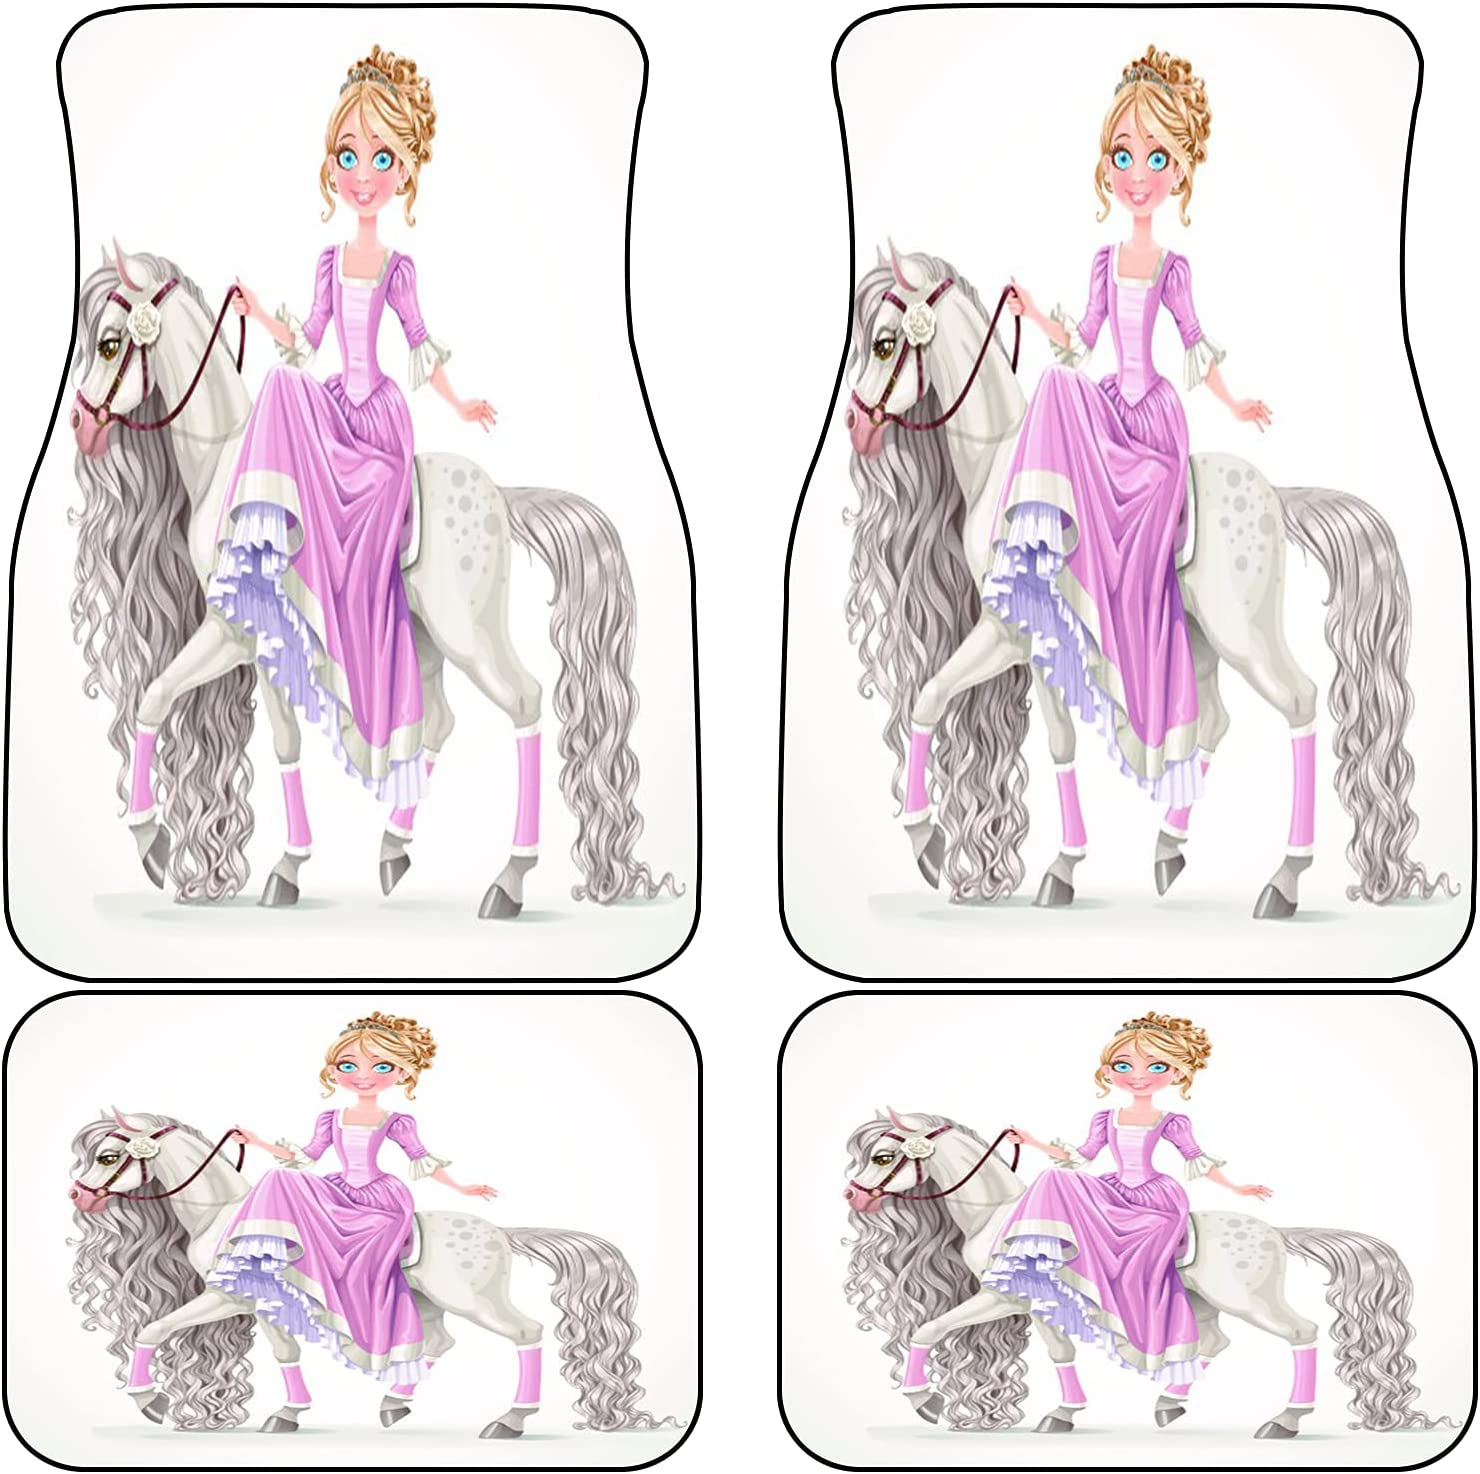 Max 69% OFF VINISATH Front Rear Car Mats Set of Fashionable Cute White 4 On A Princess